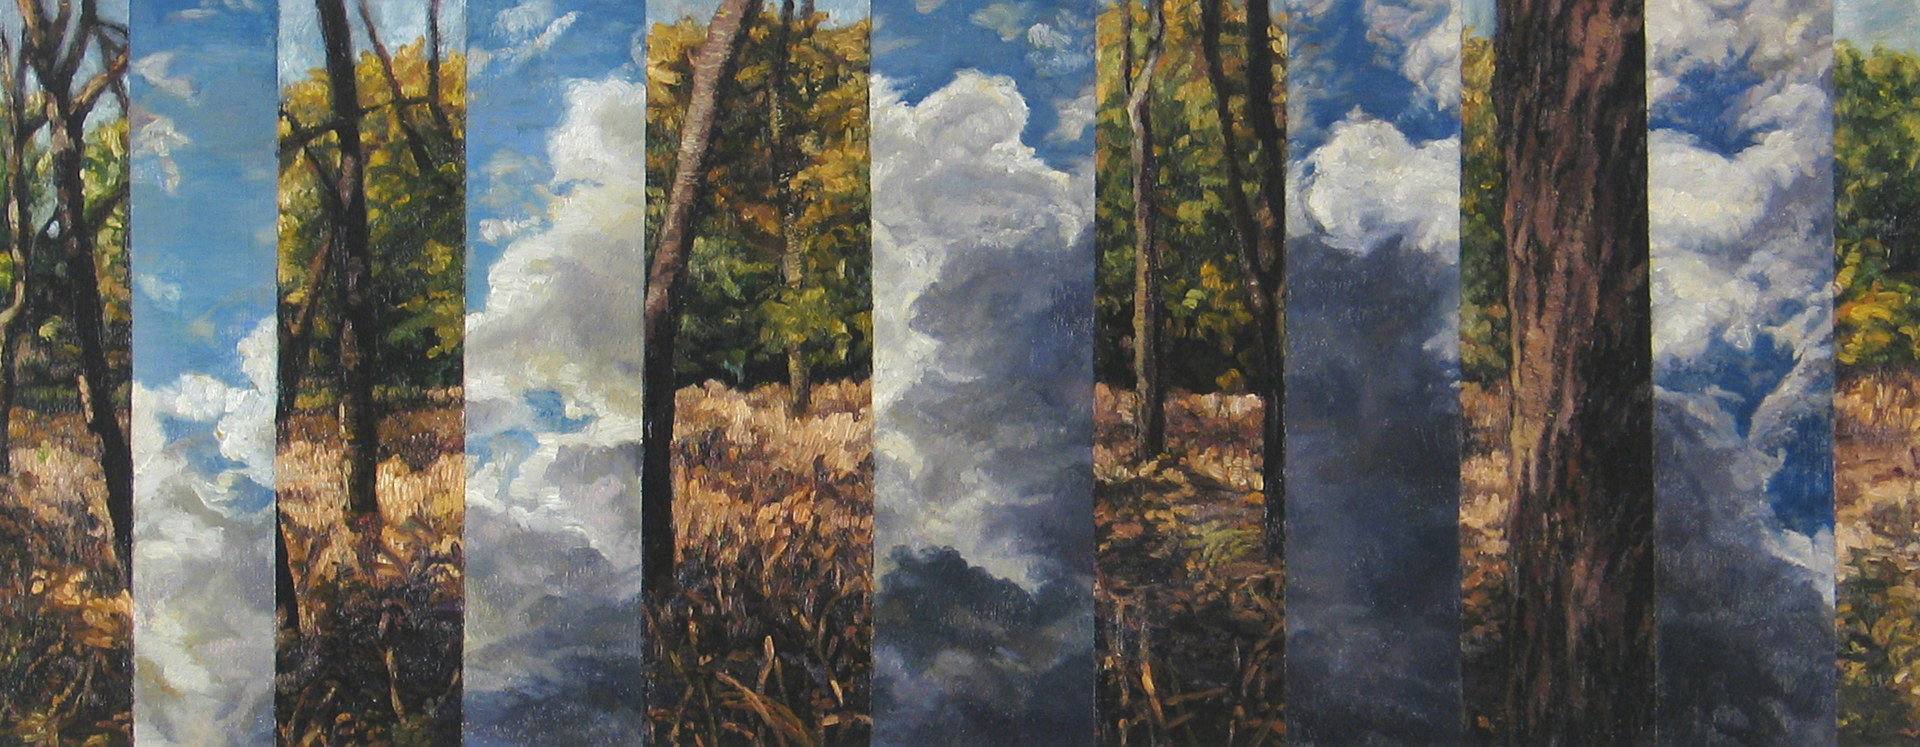 Oil painting Entre Ciel et Terre (mont royal) by Renee Duval